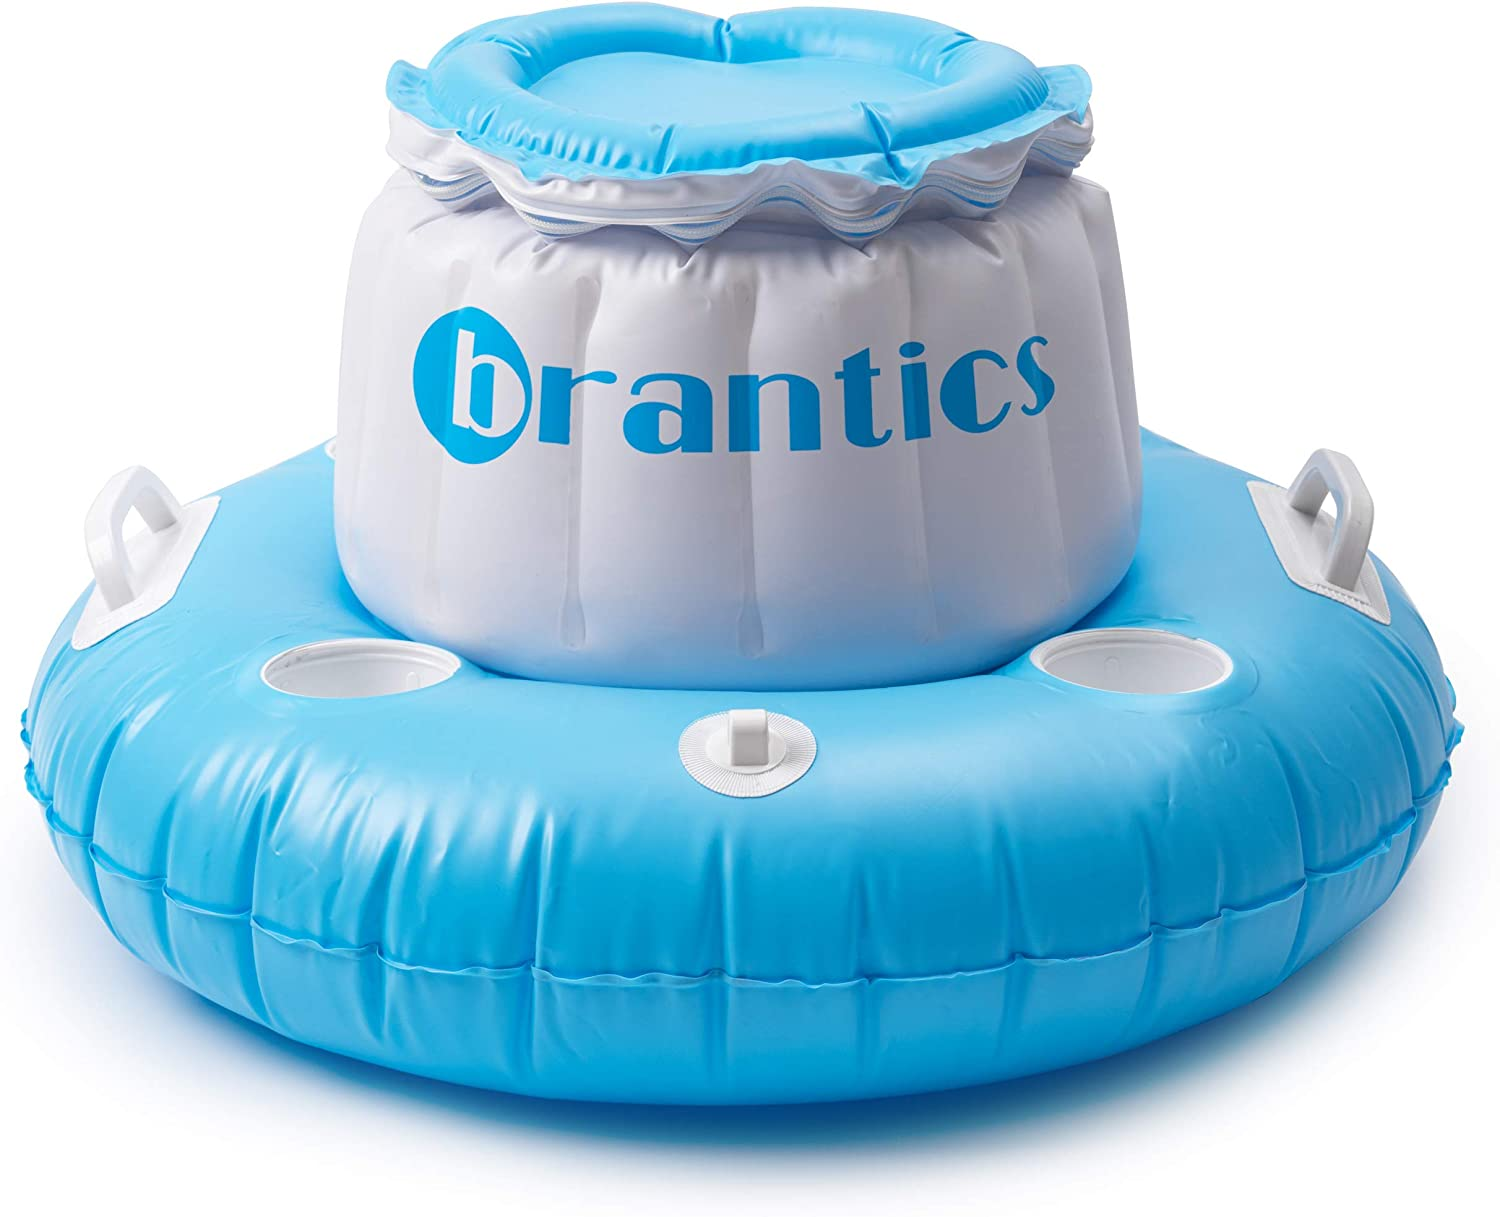 Inflatable Cooler - Perfect Beach Cooler, Beverage Cooler, Kayak Cooler & More | This Floating Cooler is the Ultimate Drink Cooler, Party Cooler & Beer Cooler | Ice Chests and Coolers for Lake & Pool